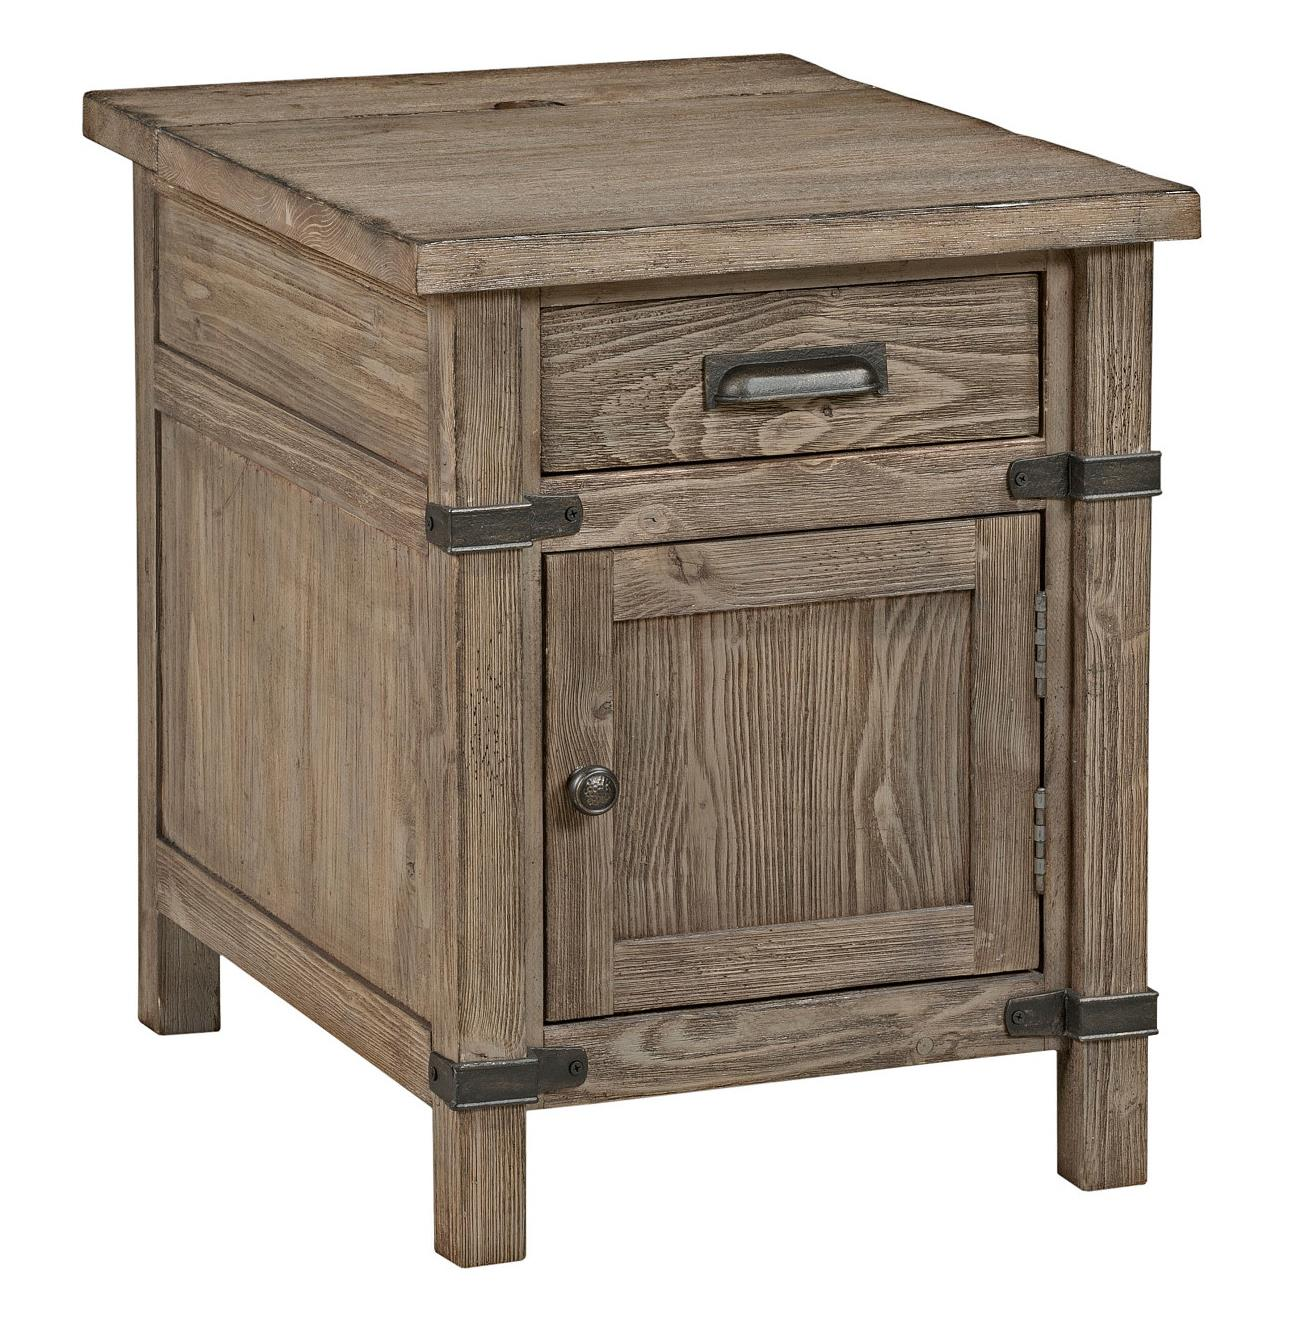 chair side tables with storage black covers for sale durban kincaid furniture foundry 59 026 rustic weathered gray chairside table